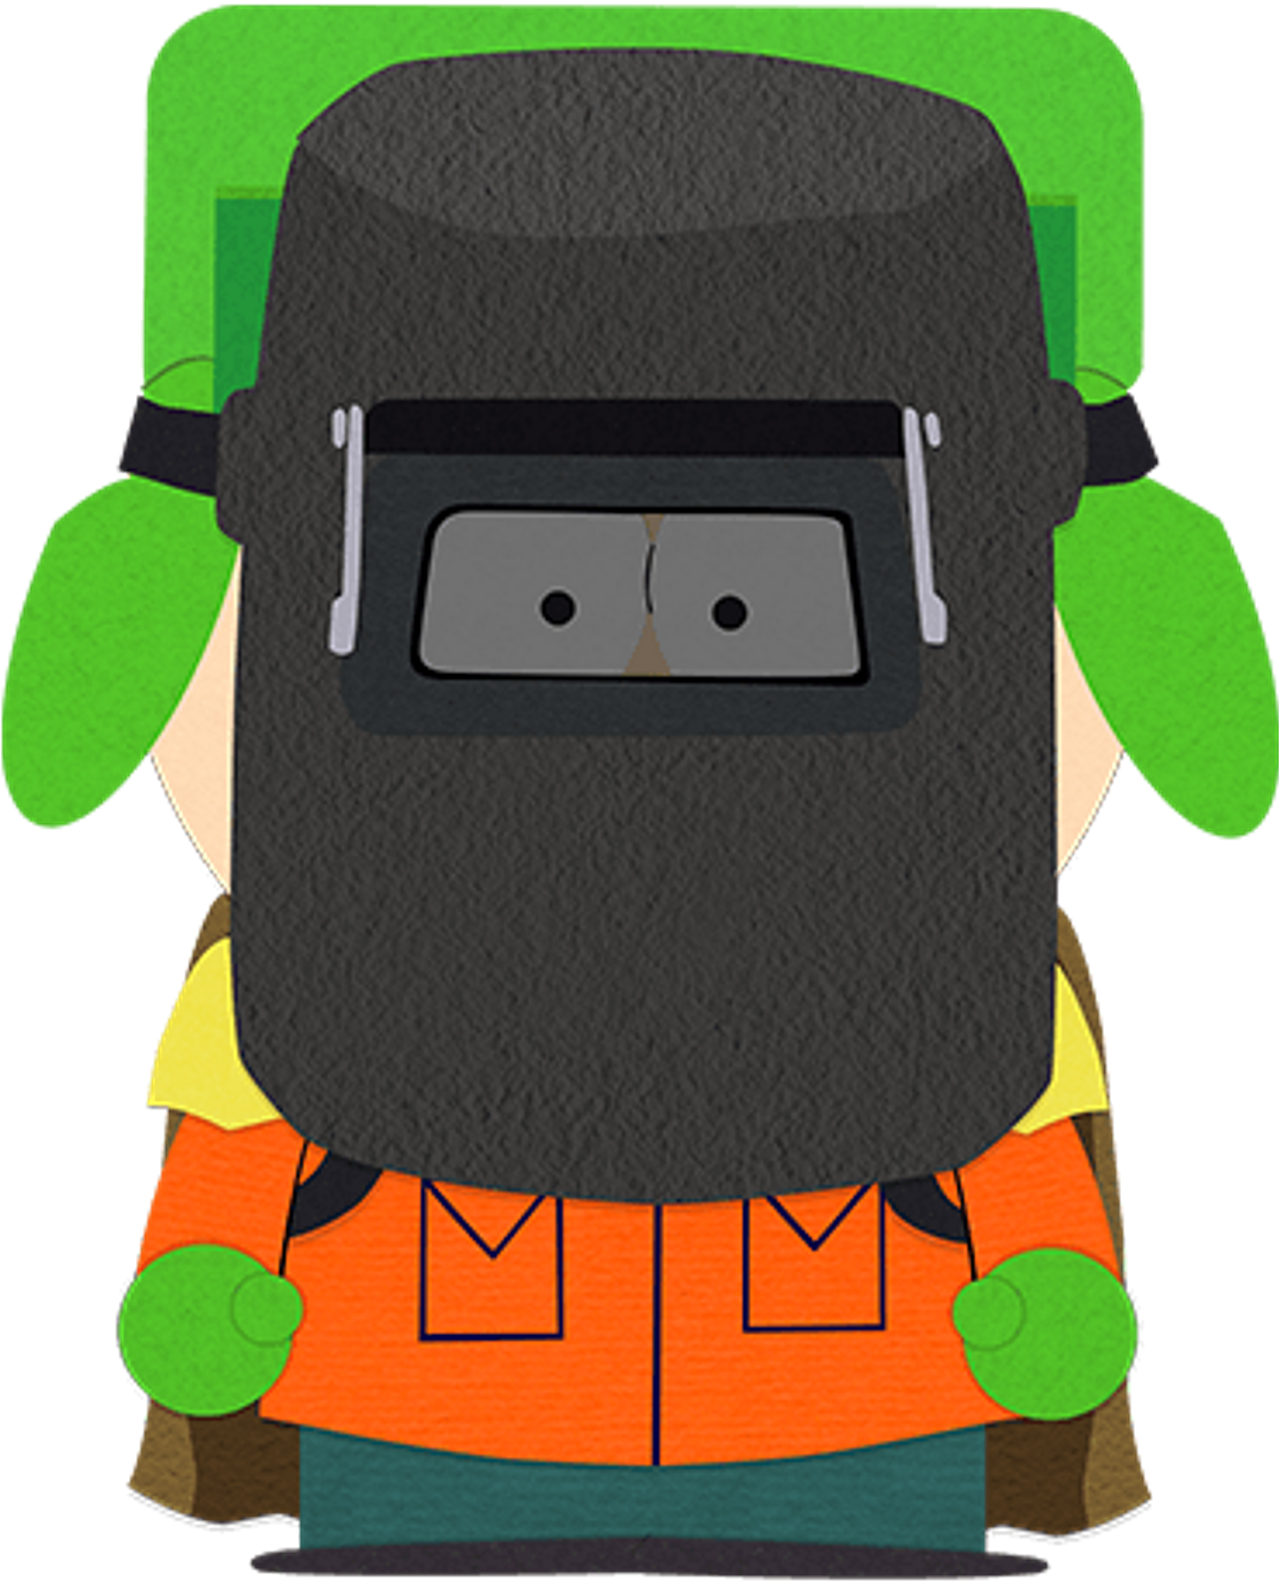 Image kyle png south. Hunter clipart bounty hunter